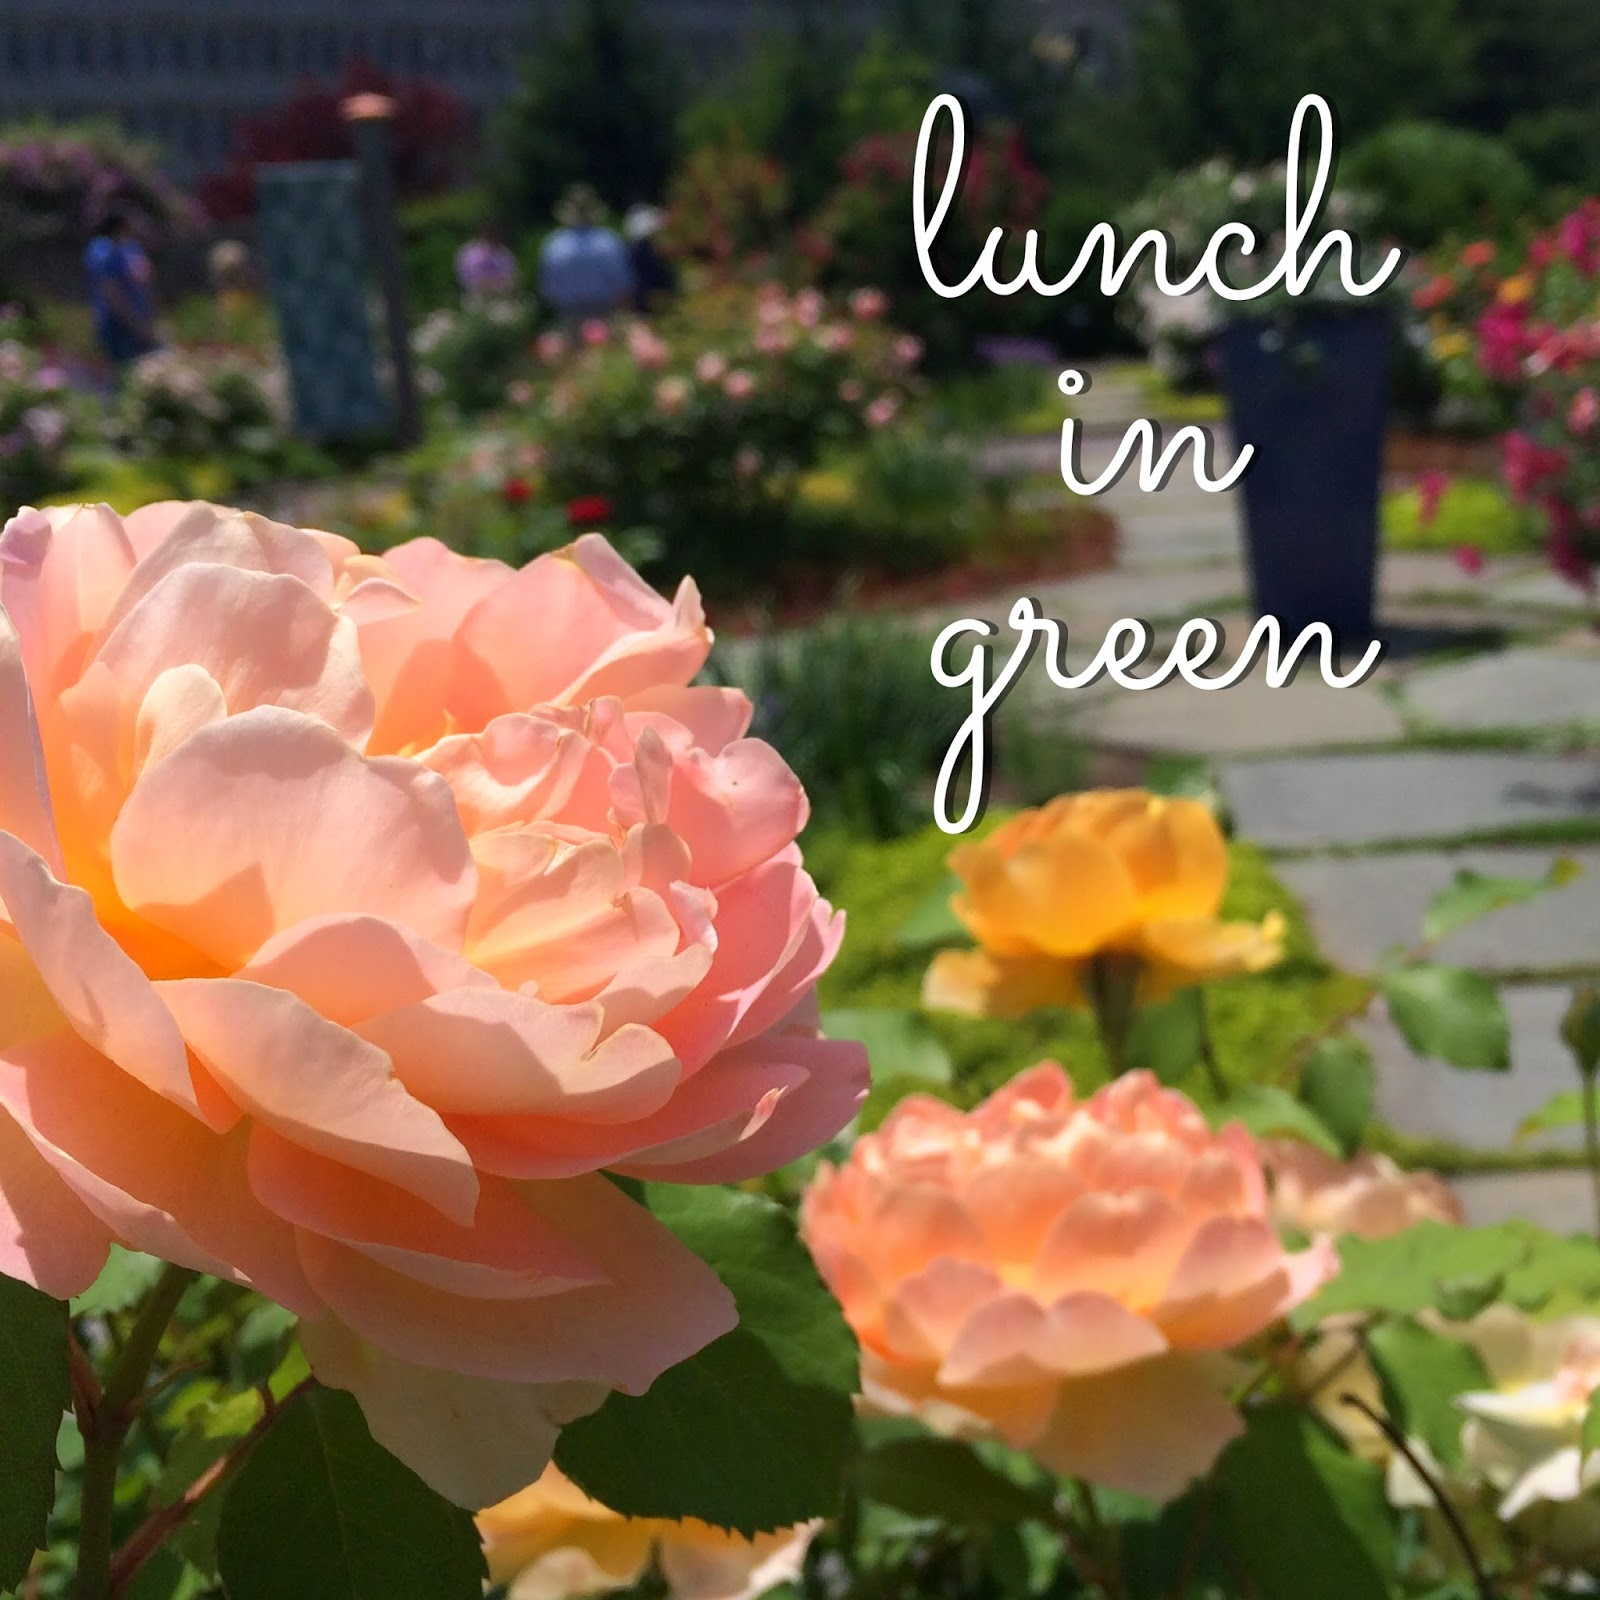 http://melthemidnightbaker.blogspot.com/2014/06/botanic-gardens-take-your-lunch-here.html#more